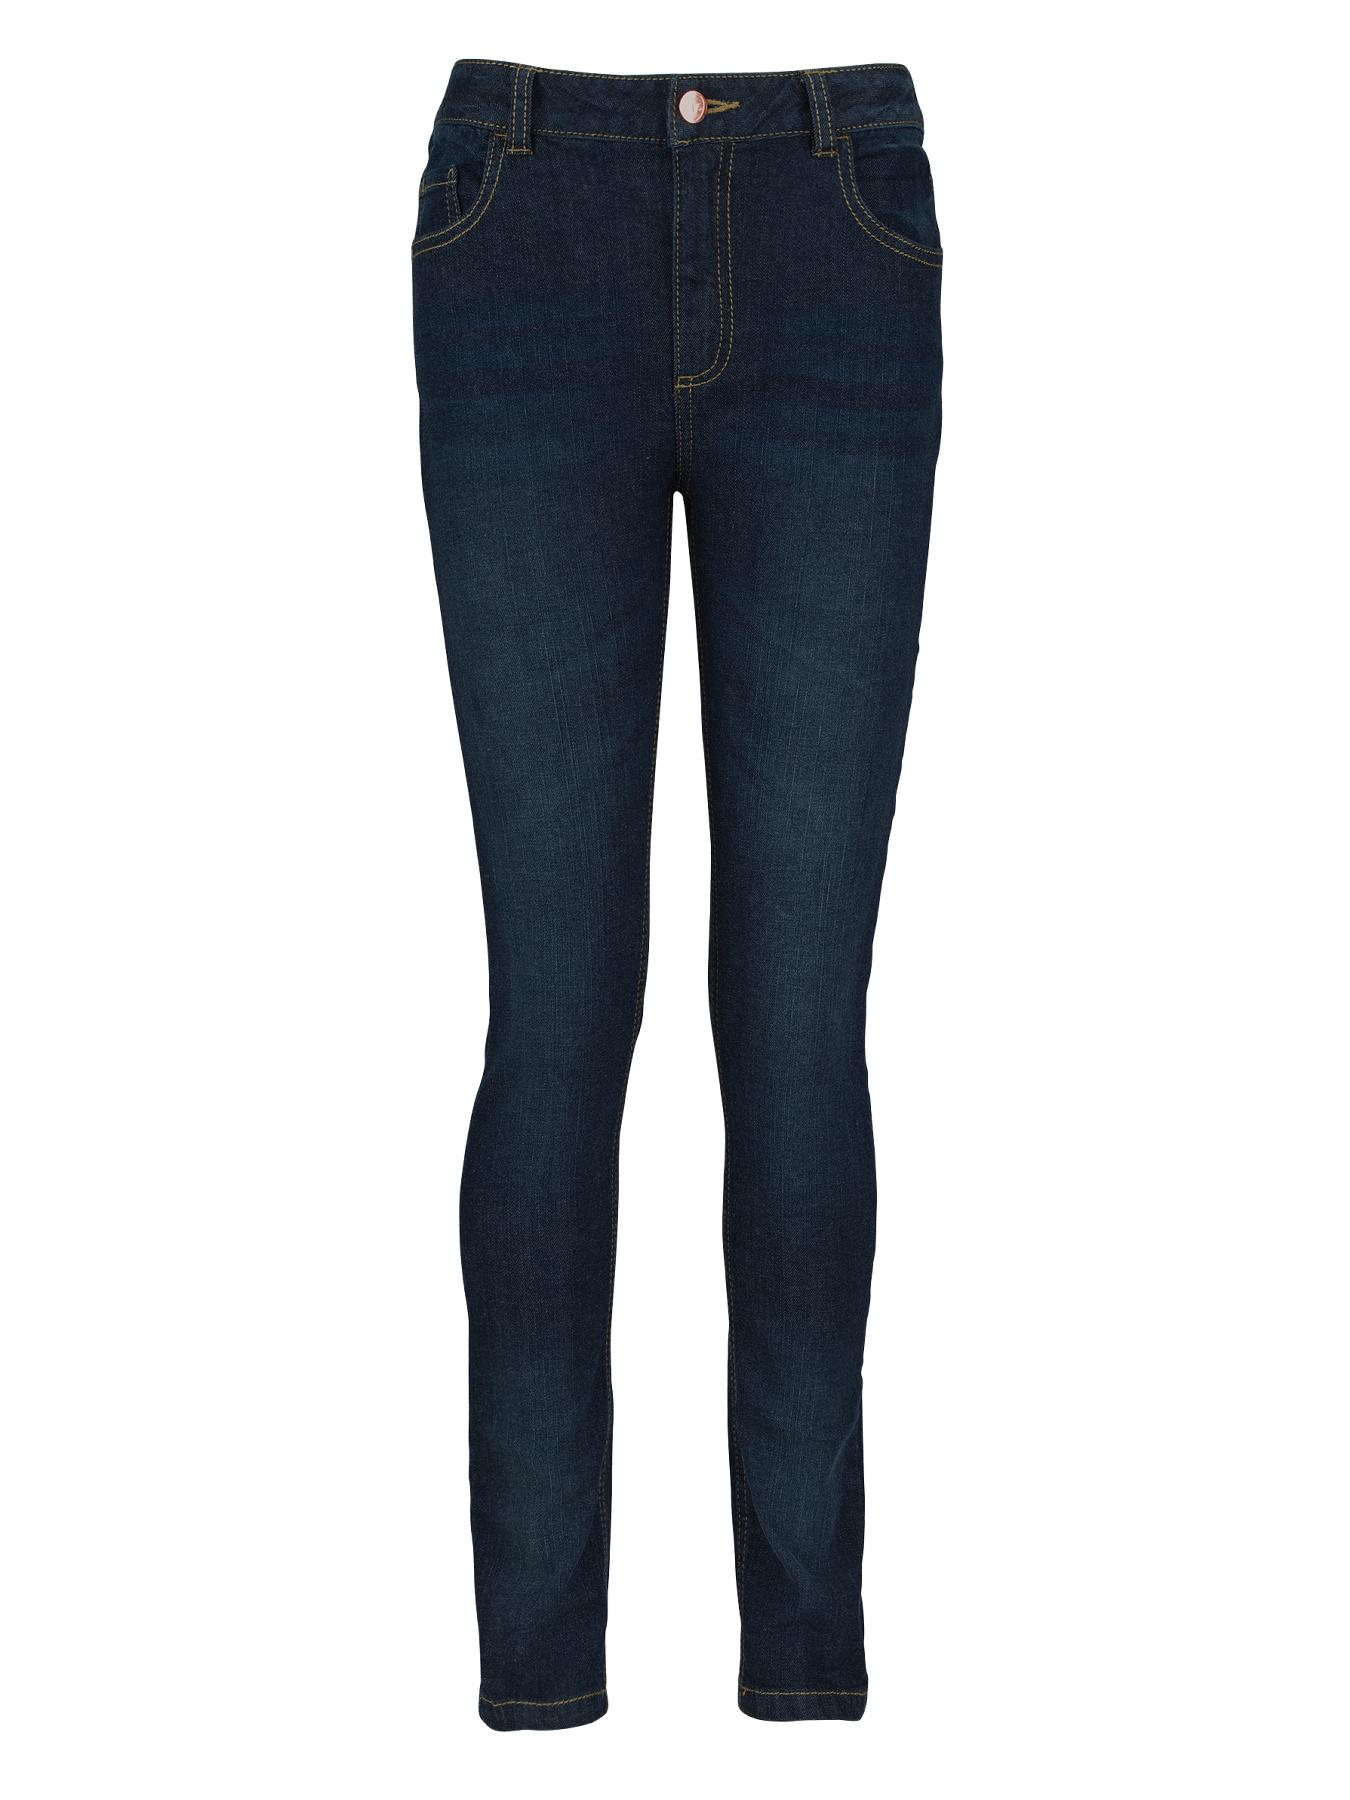 Freespirit Girls Skinny Jeans